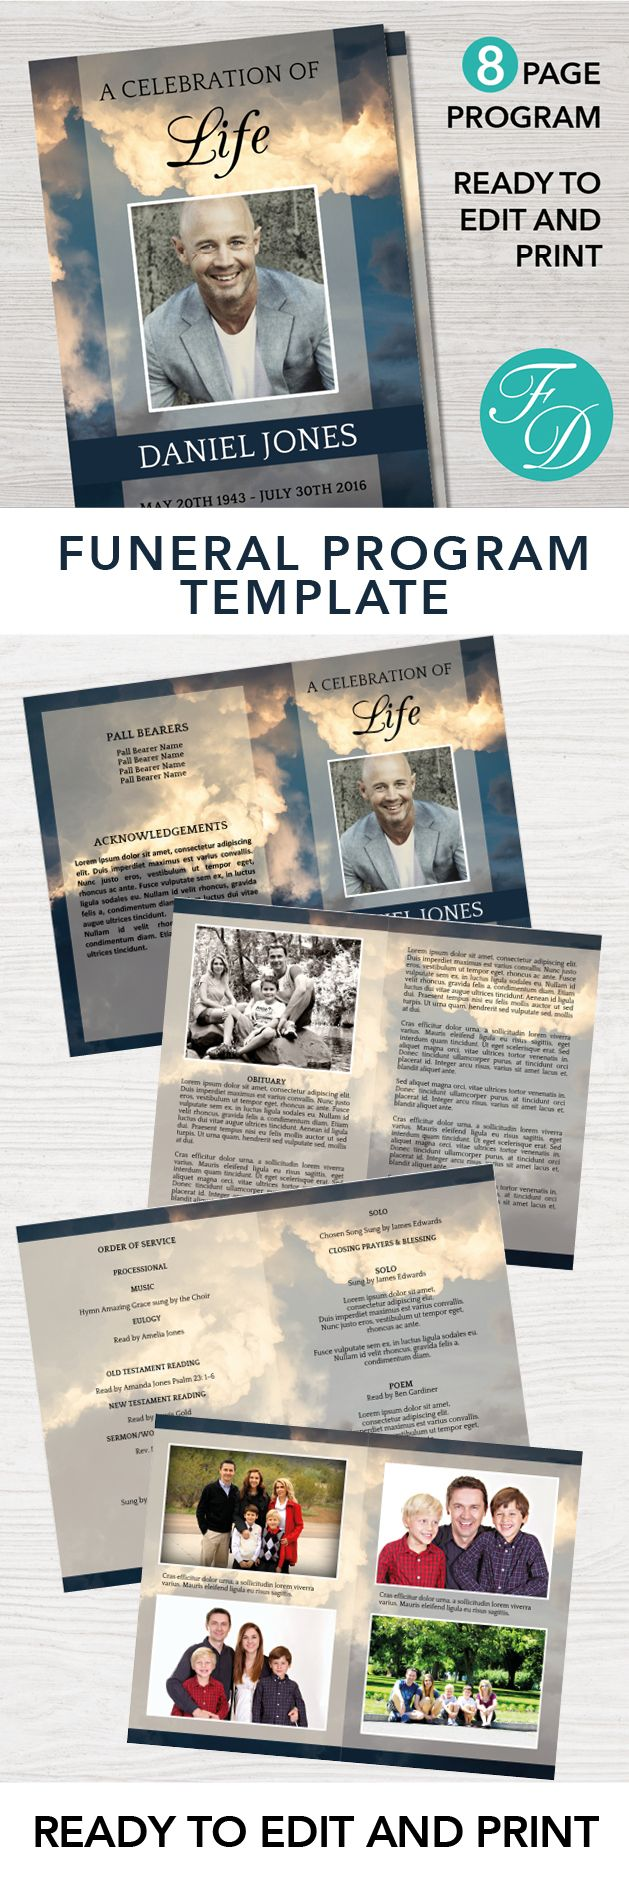 Sky Printable Funeral program ready to edit & print Simply purchase your funeral templates, download, edit with Microsoft Word and print. #obituarytemplate #memorialprogram #funeralprograms #funeraltemplate #printableprogram #celebrationoflife